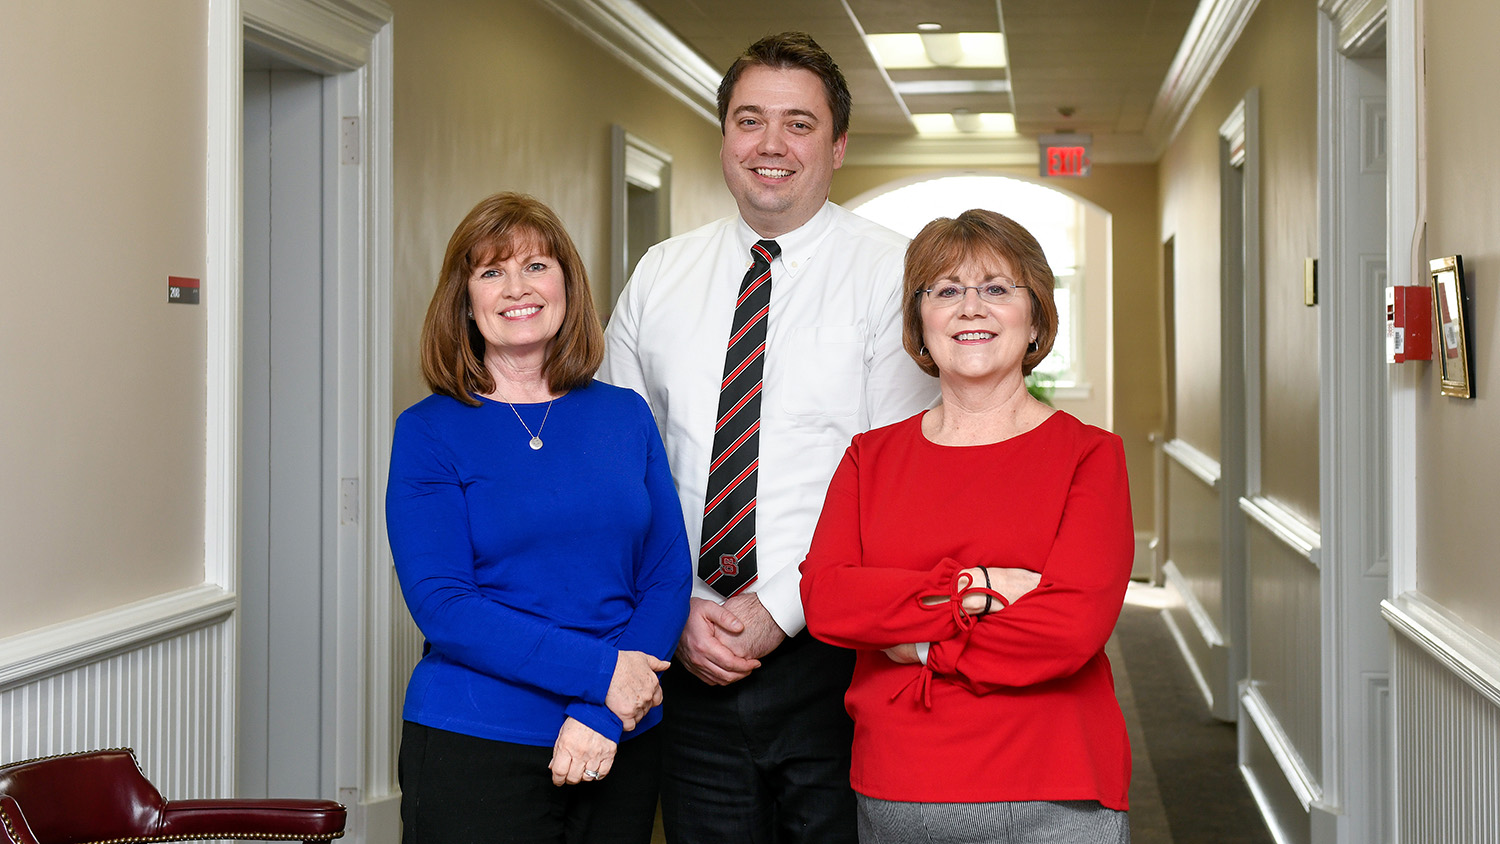 Vicki Pennington, Adrian Day and Karen Acree